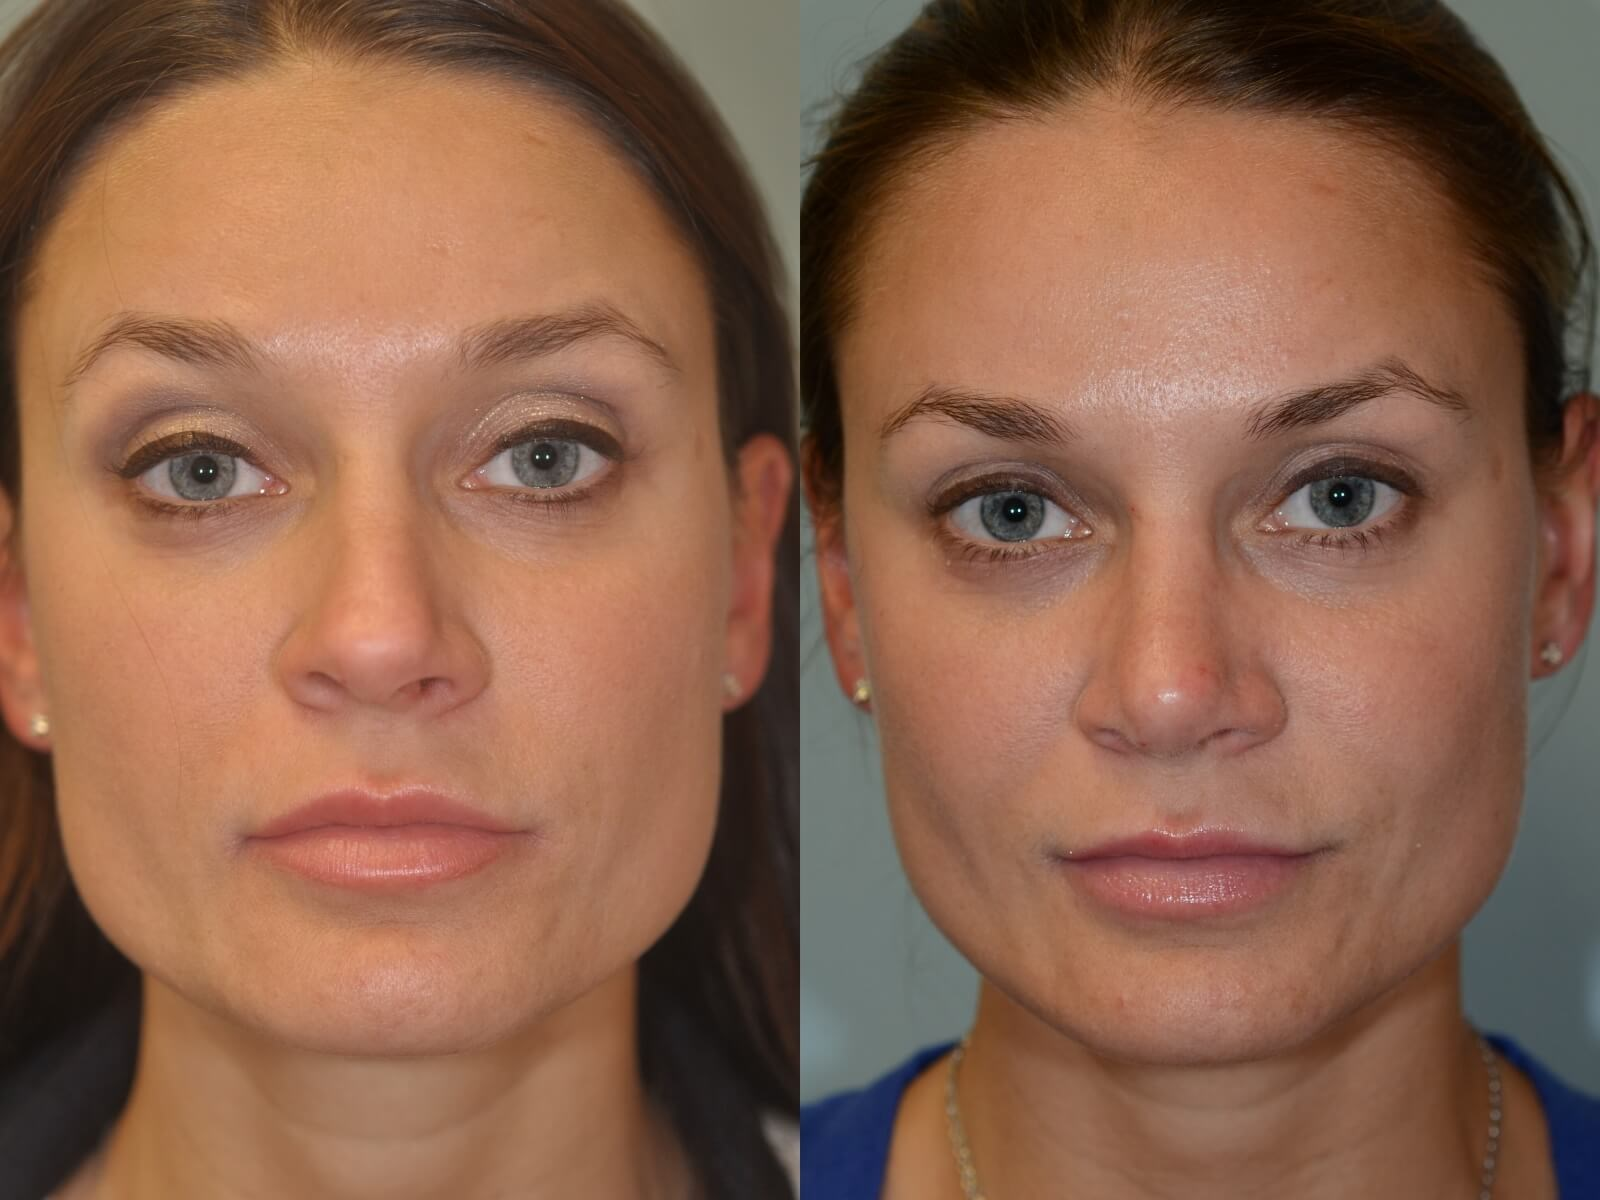 Rhinoplasty Before And After Revision Rhinop...